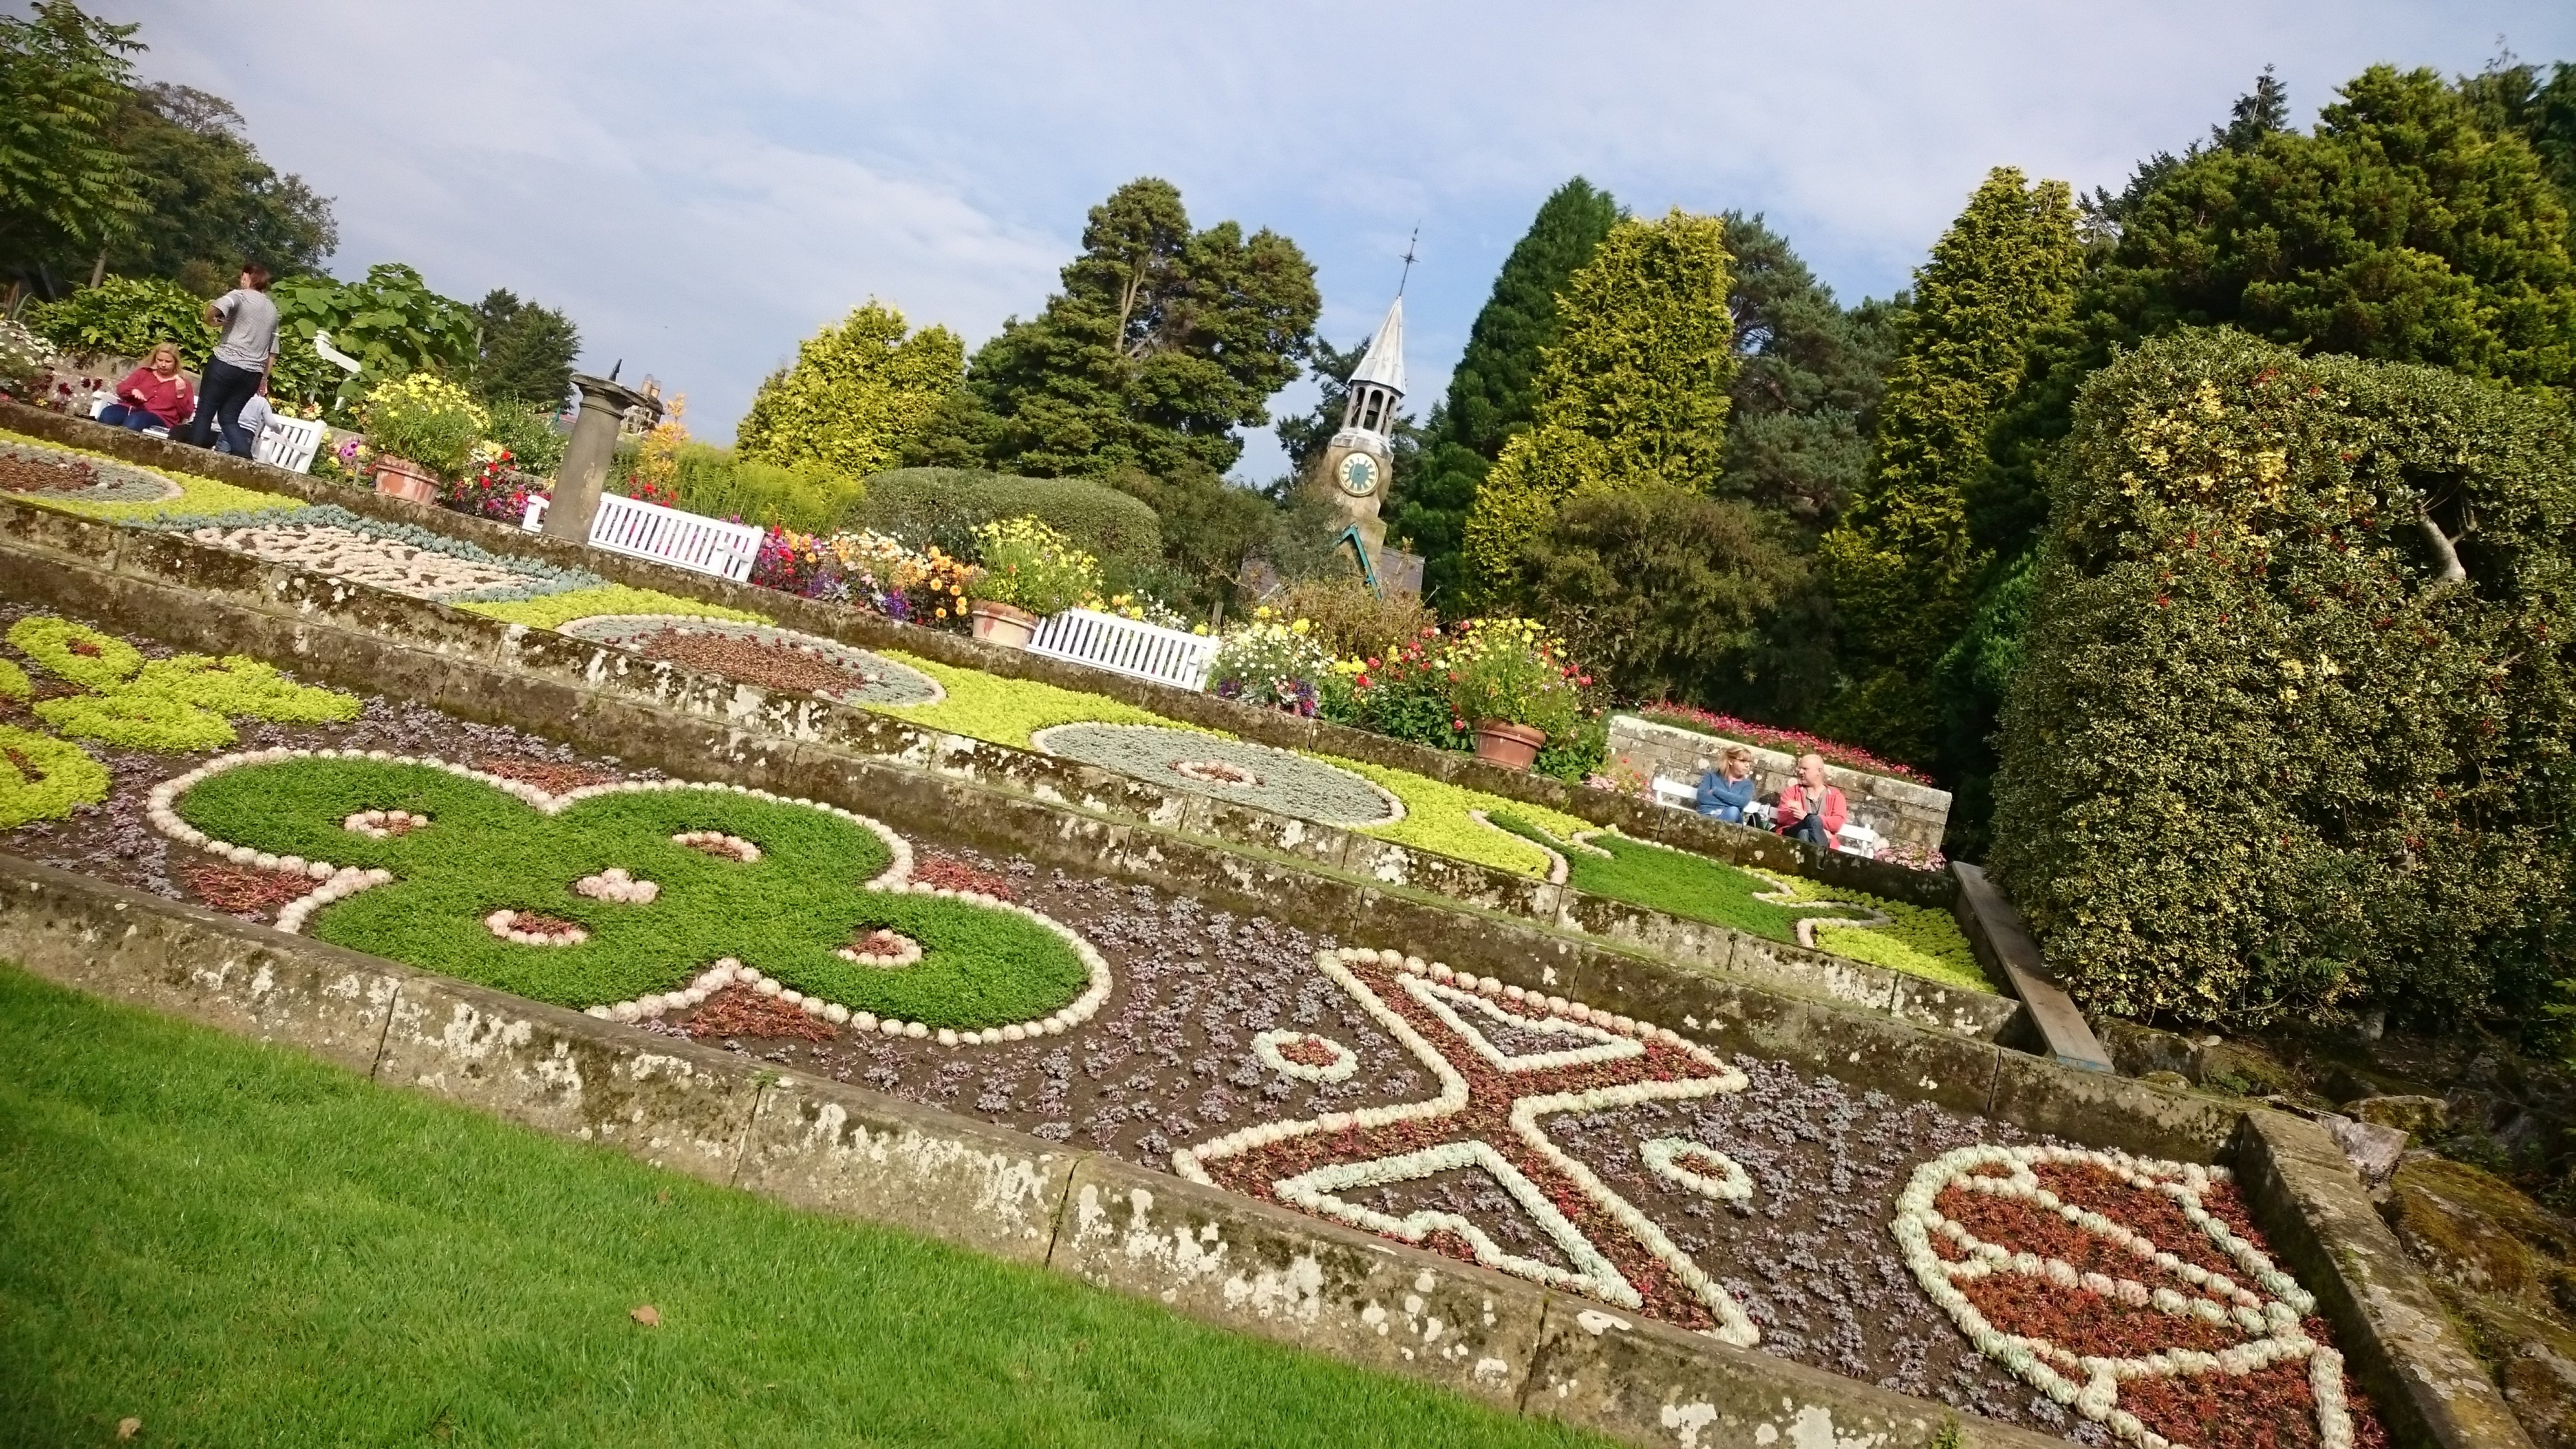 cragside estate gardens northumberland - a great place to visit on an english countryside getaway